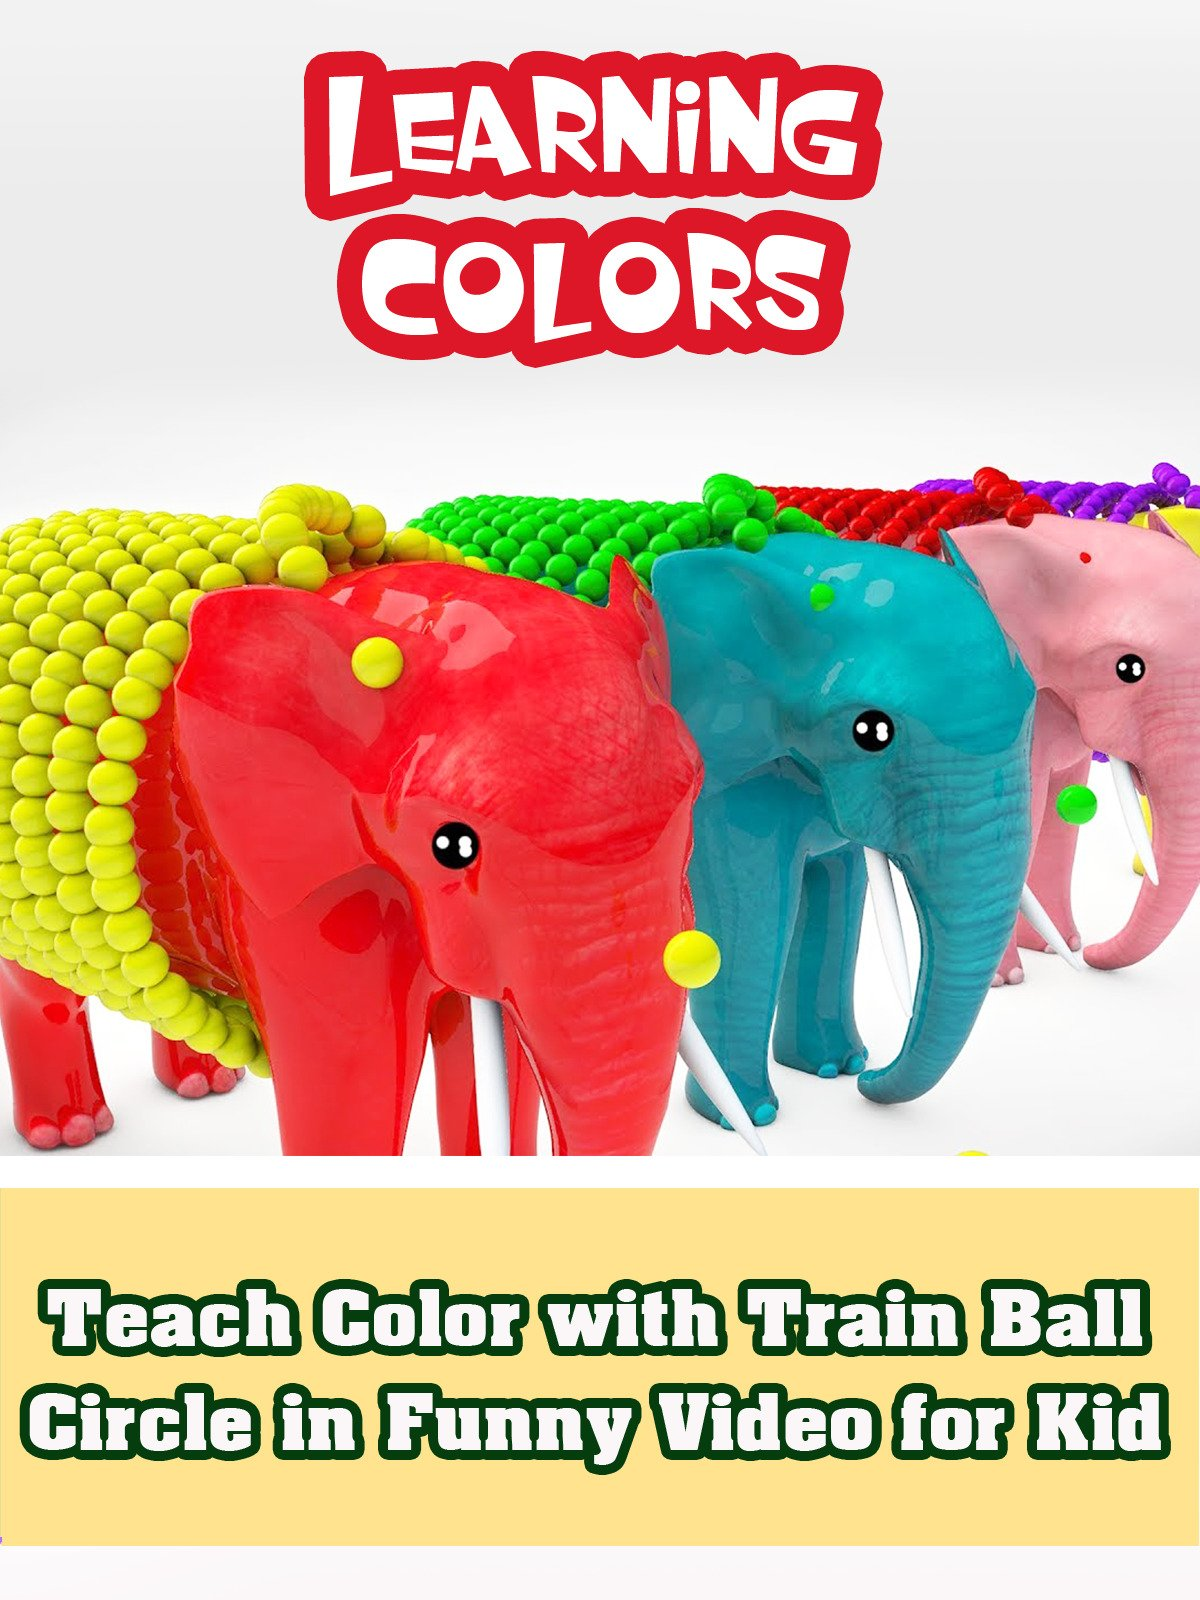 Teach Color with Train Ball Circle in Funny Video for Kid